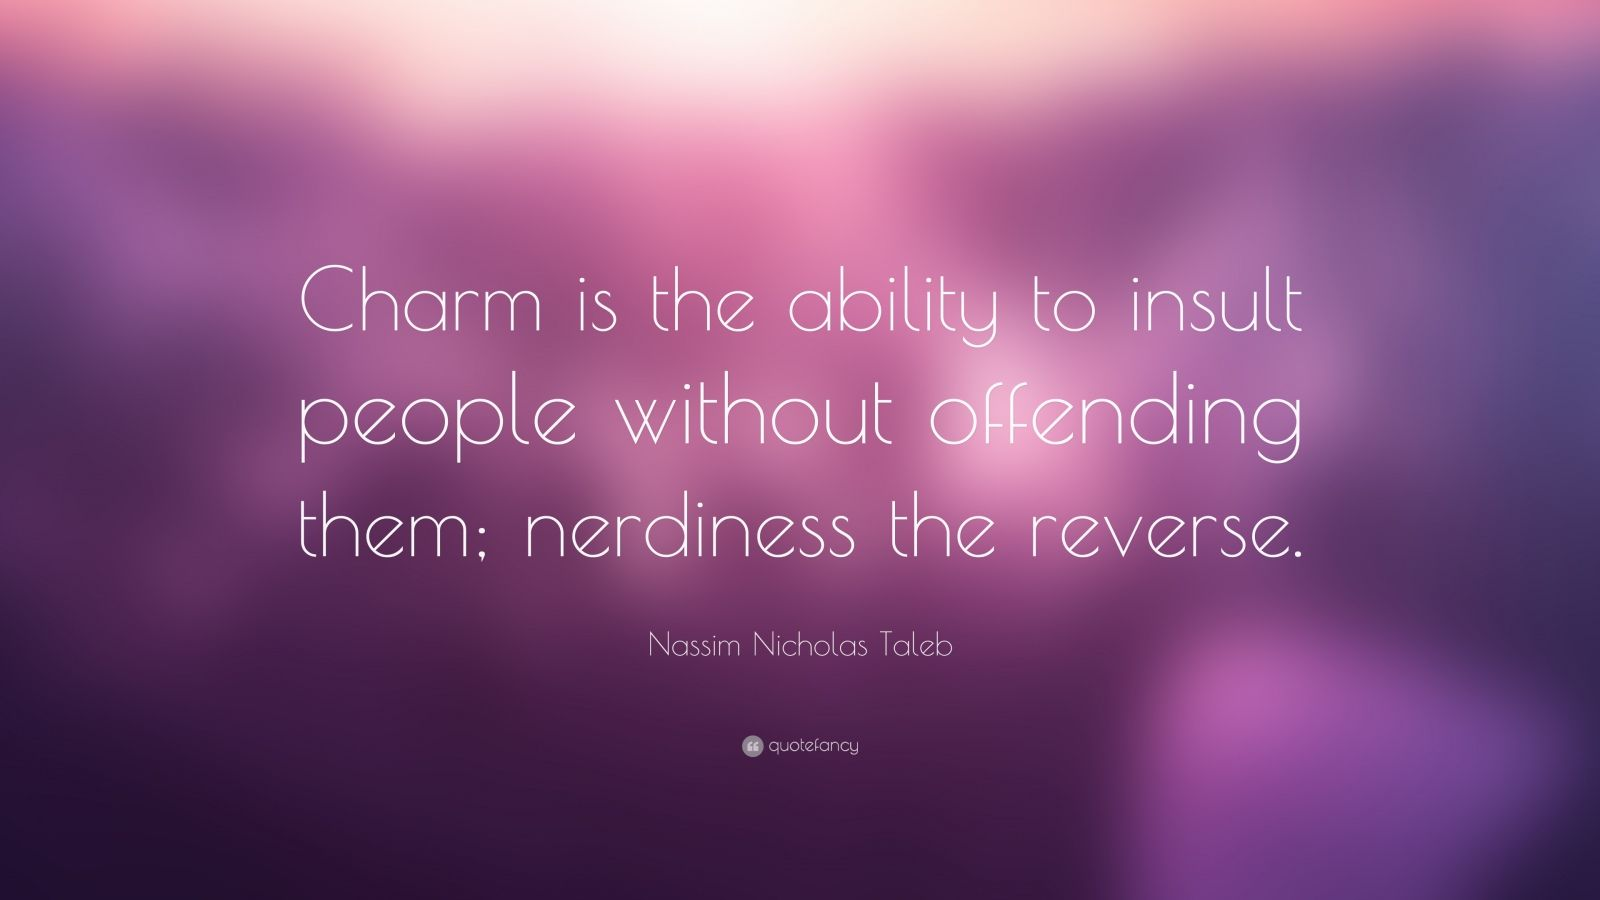 """Nassim Nicholas Taleb Quote: """"Charm is the ability to insult people without offending them; nerdiness the reverse."""""""